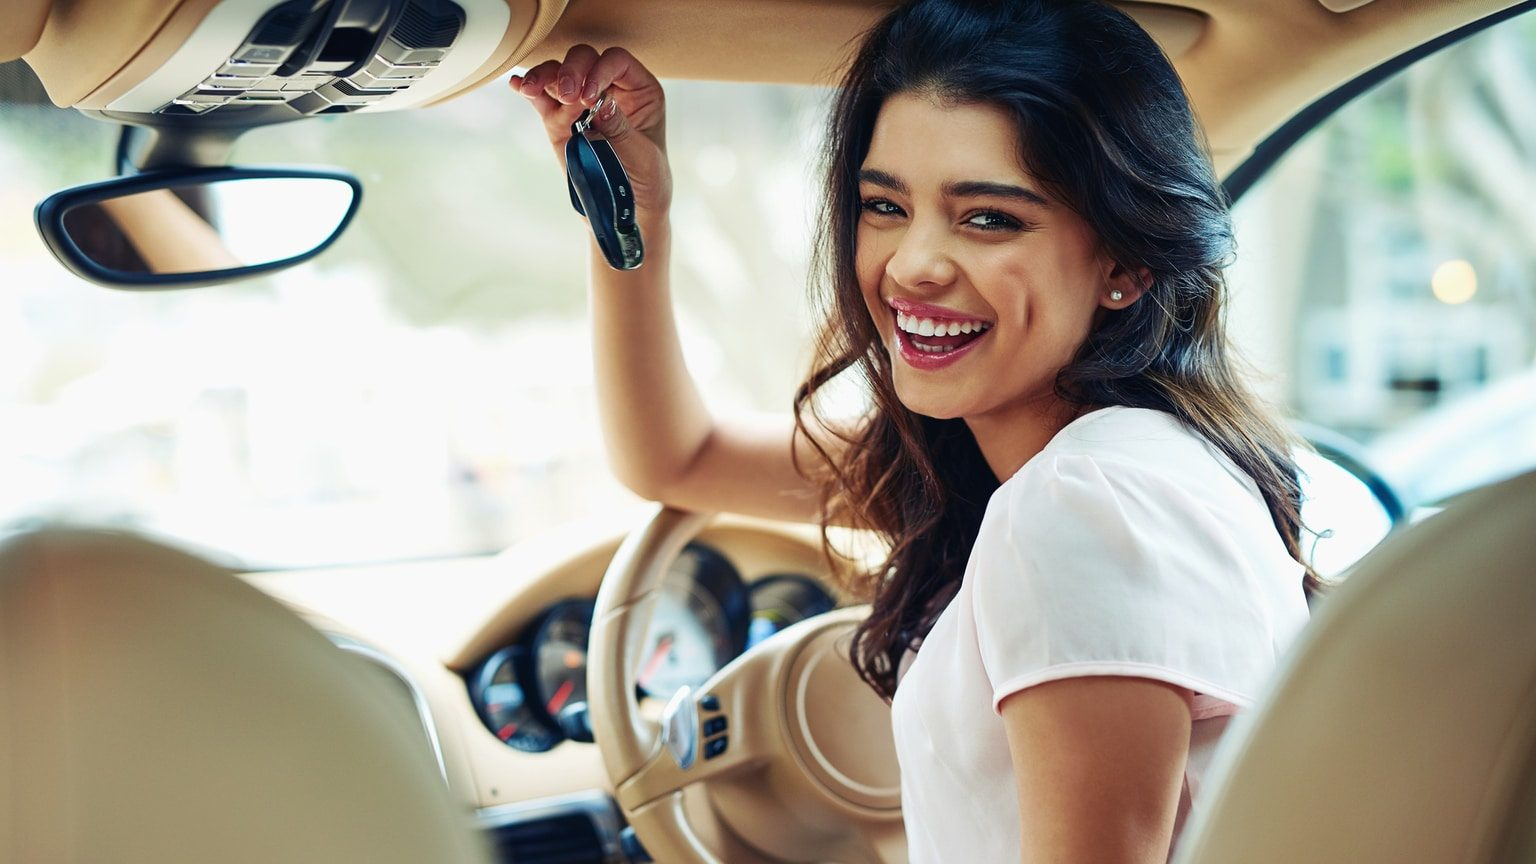 Young woman smiling while sitting in her new car